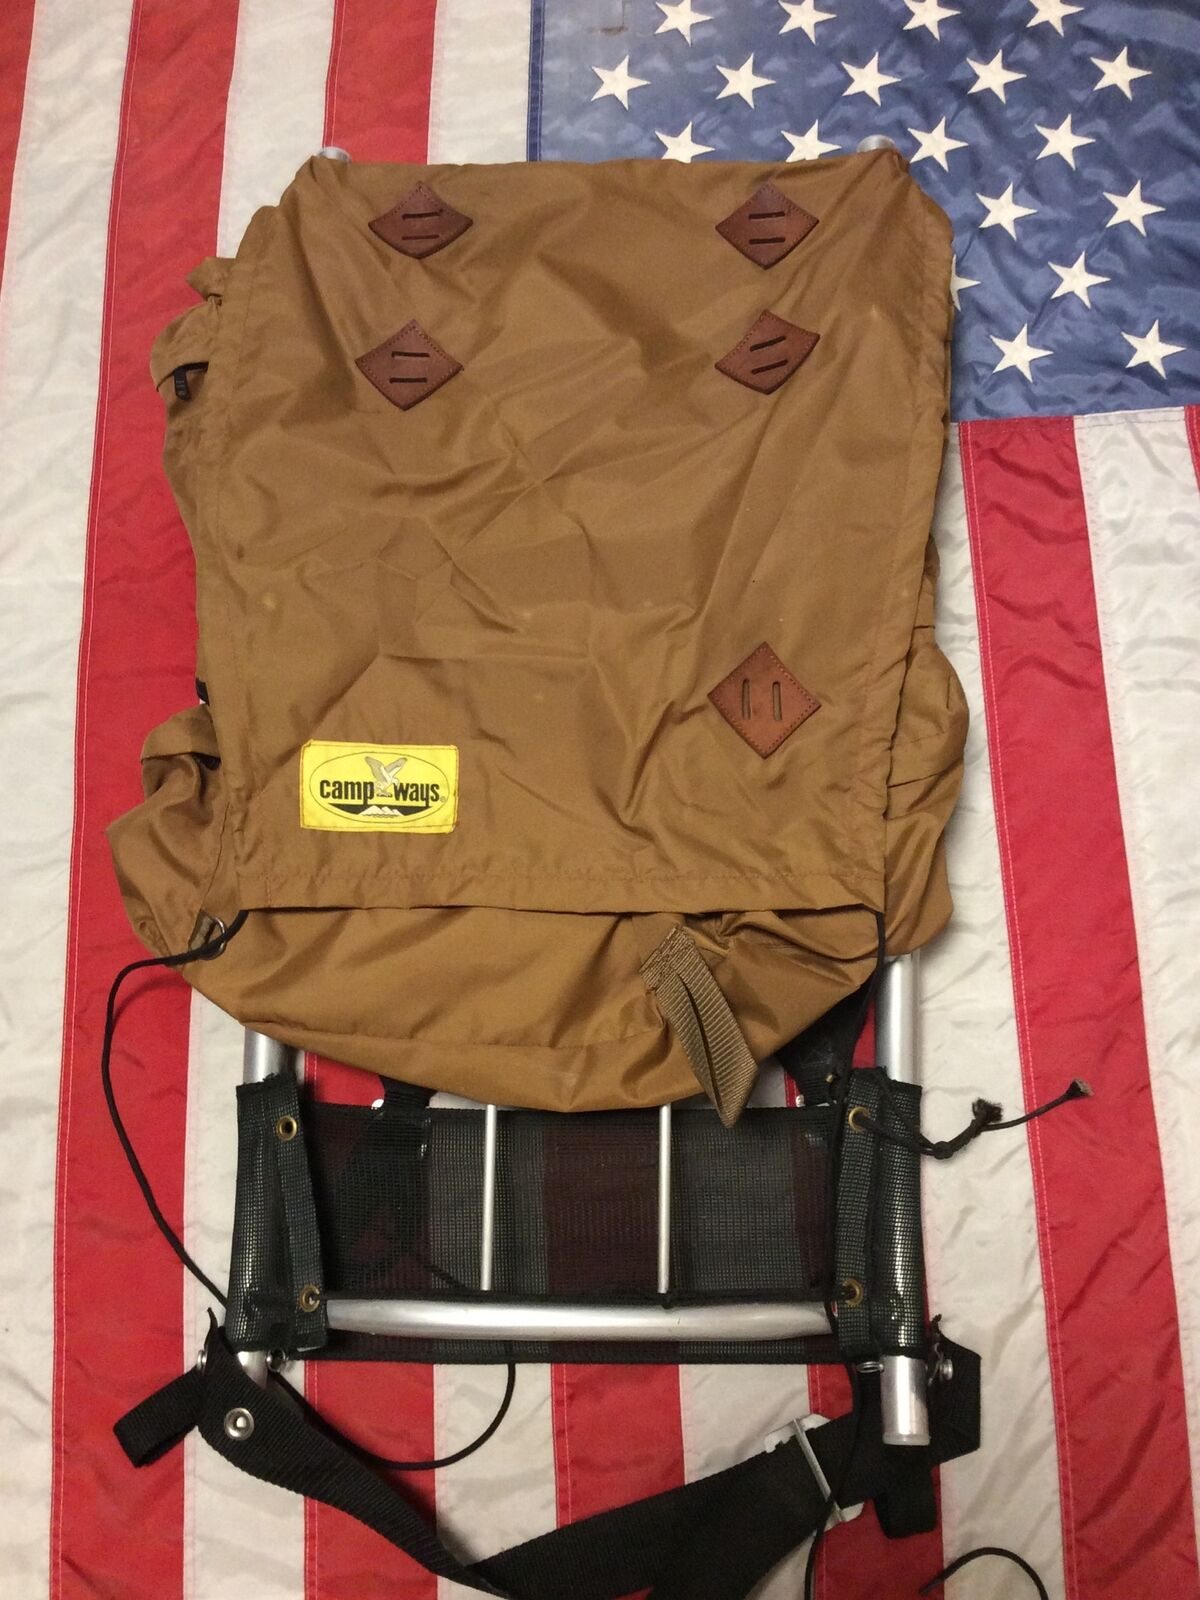 Vintage External Frame Camp Ways Backpack Nylon W/ Leather Patches,Ships Free.